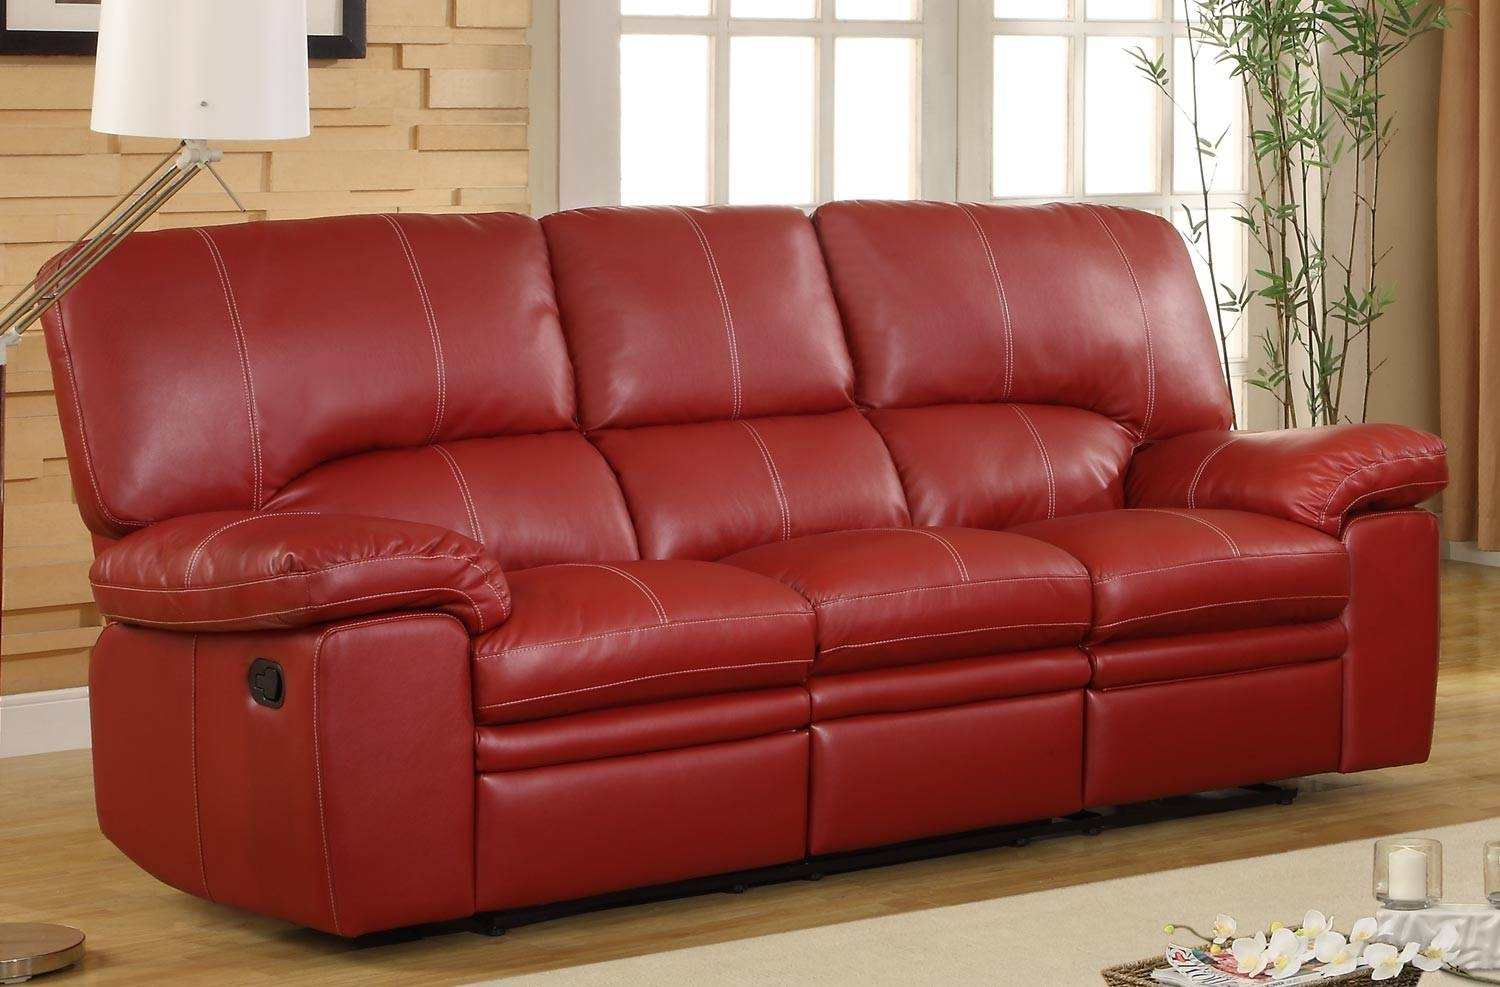 Red Leather Sectional Sofa With Recliners | Centerfieldbar intended for Dark Red Leather Sofas (Image 12 of 15)